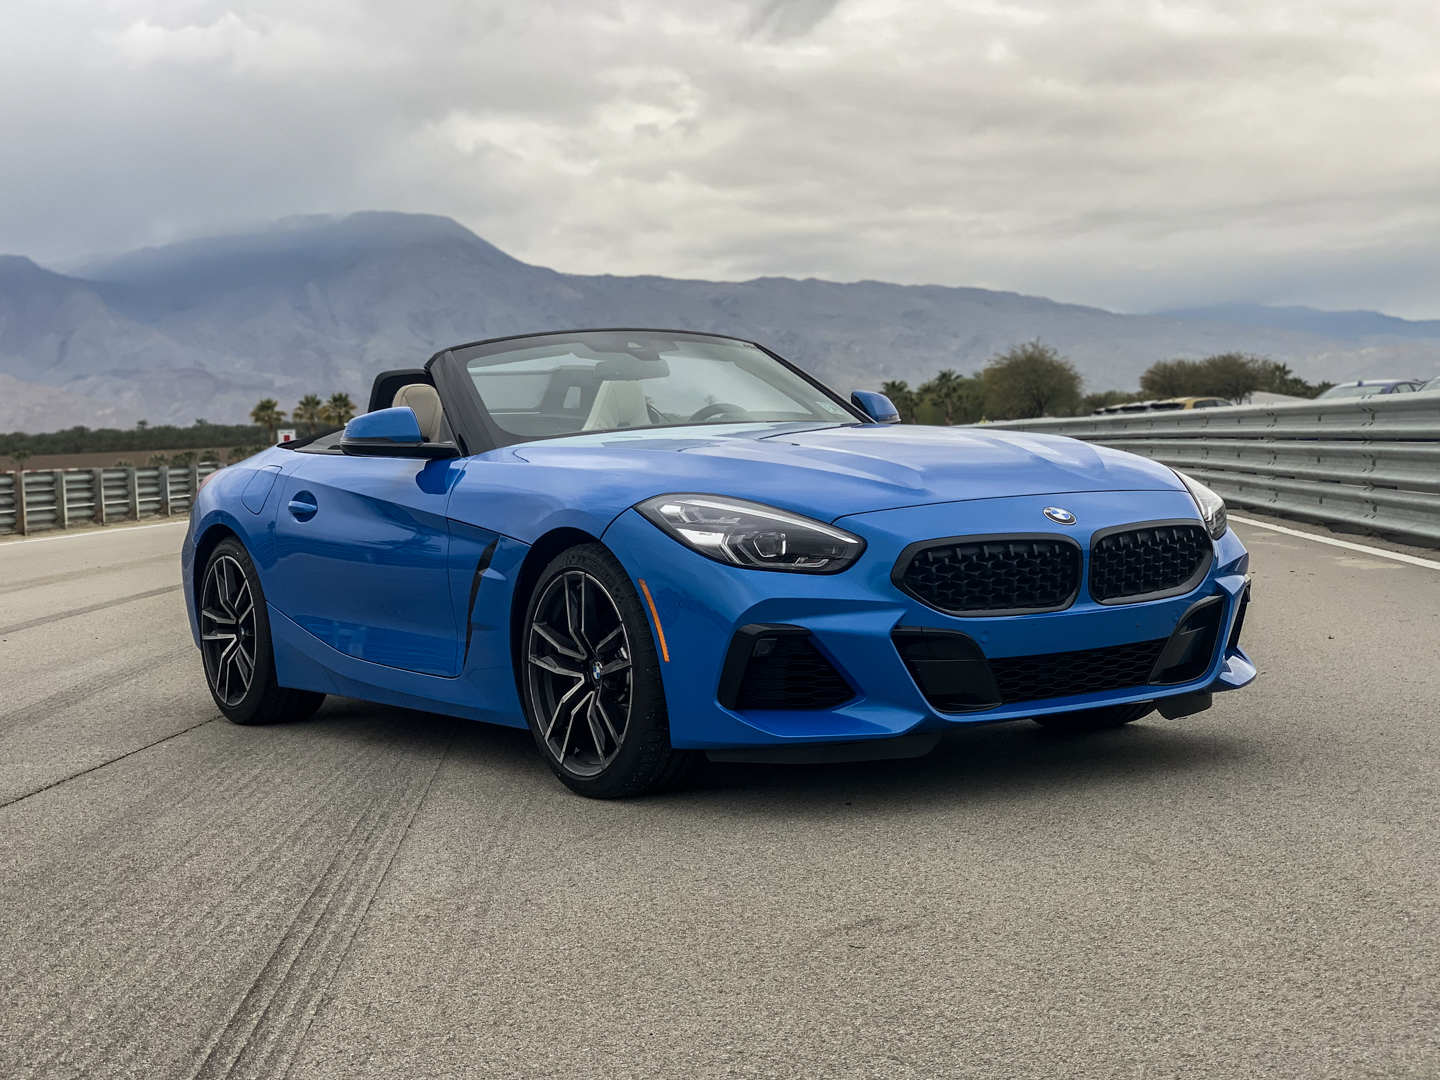 BMW Z4 sDrive30i Test Fest 15 of 25